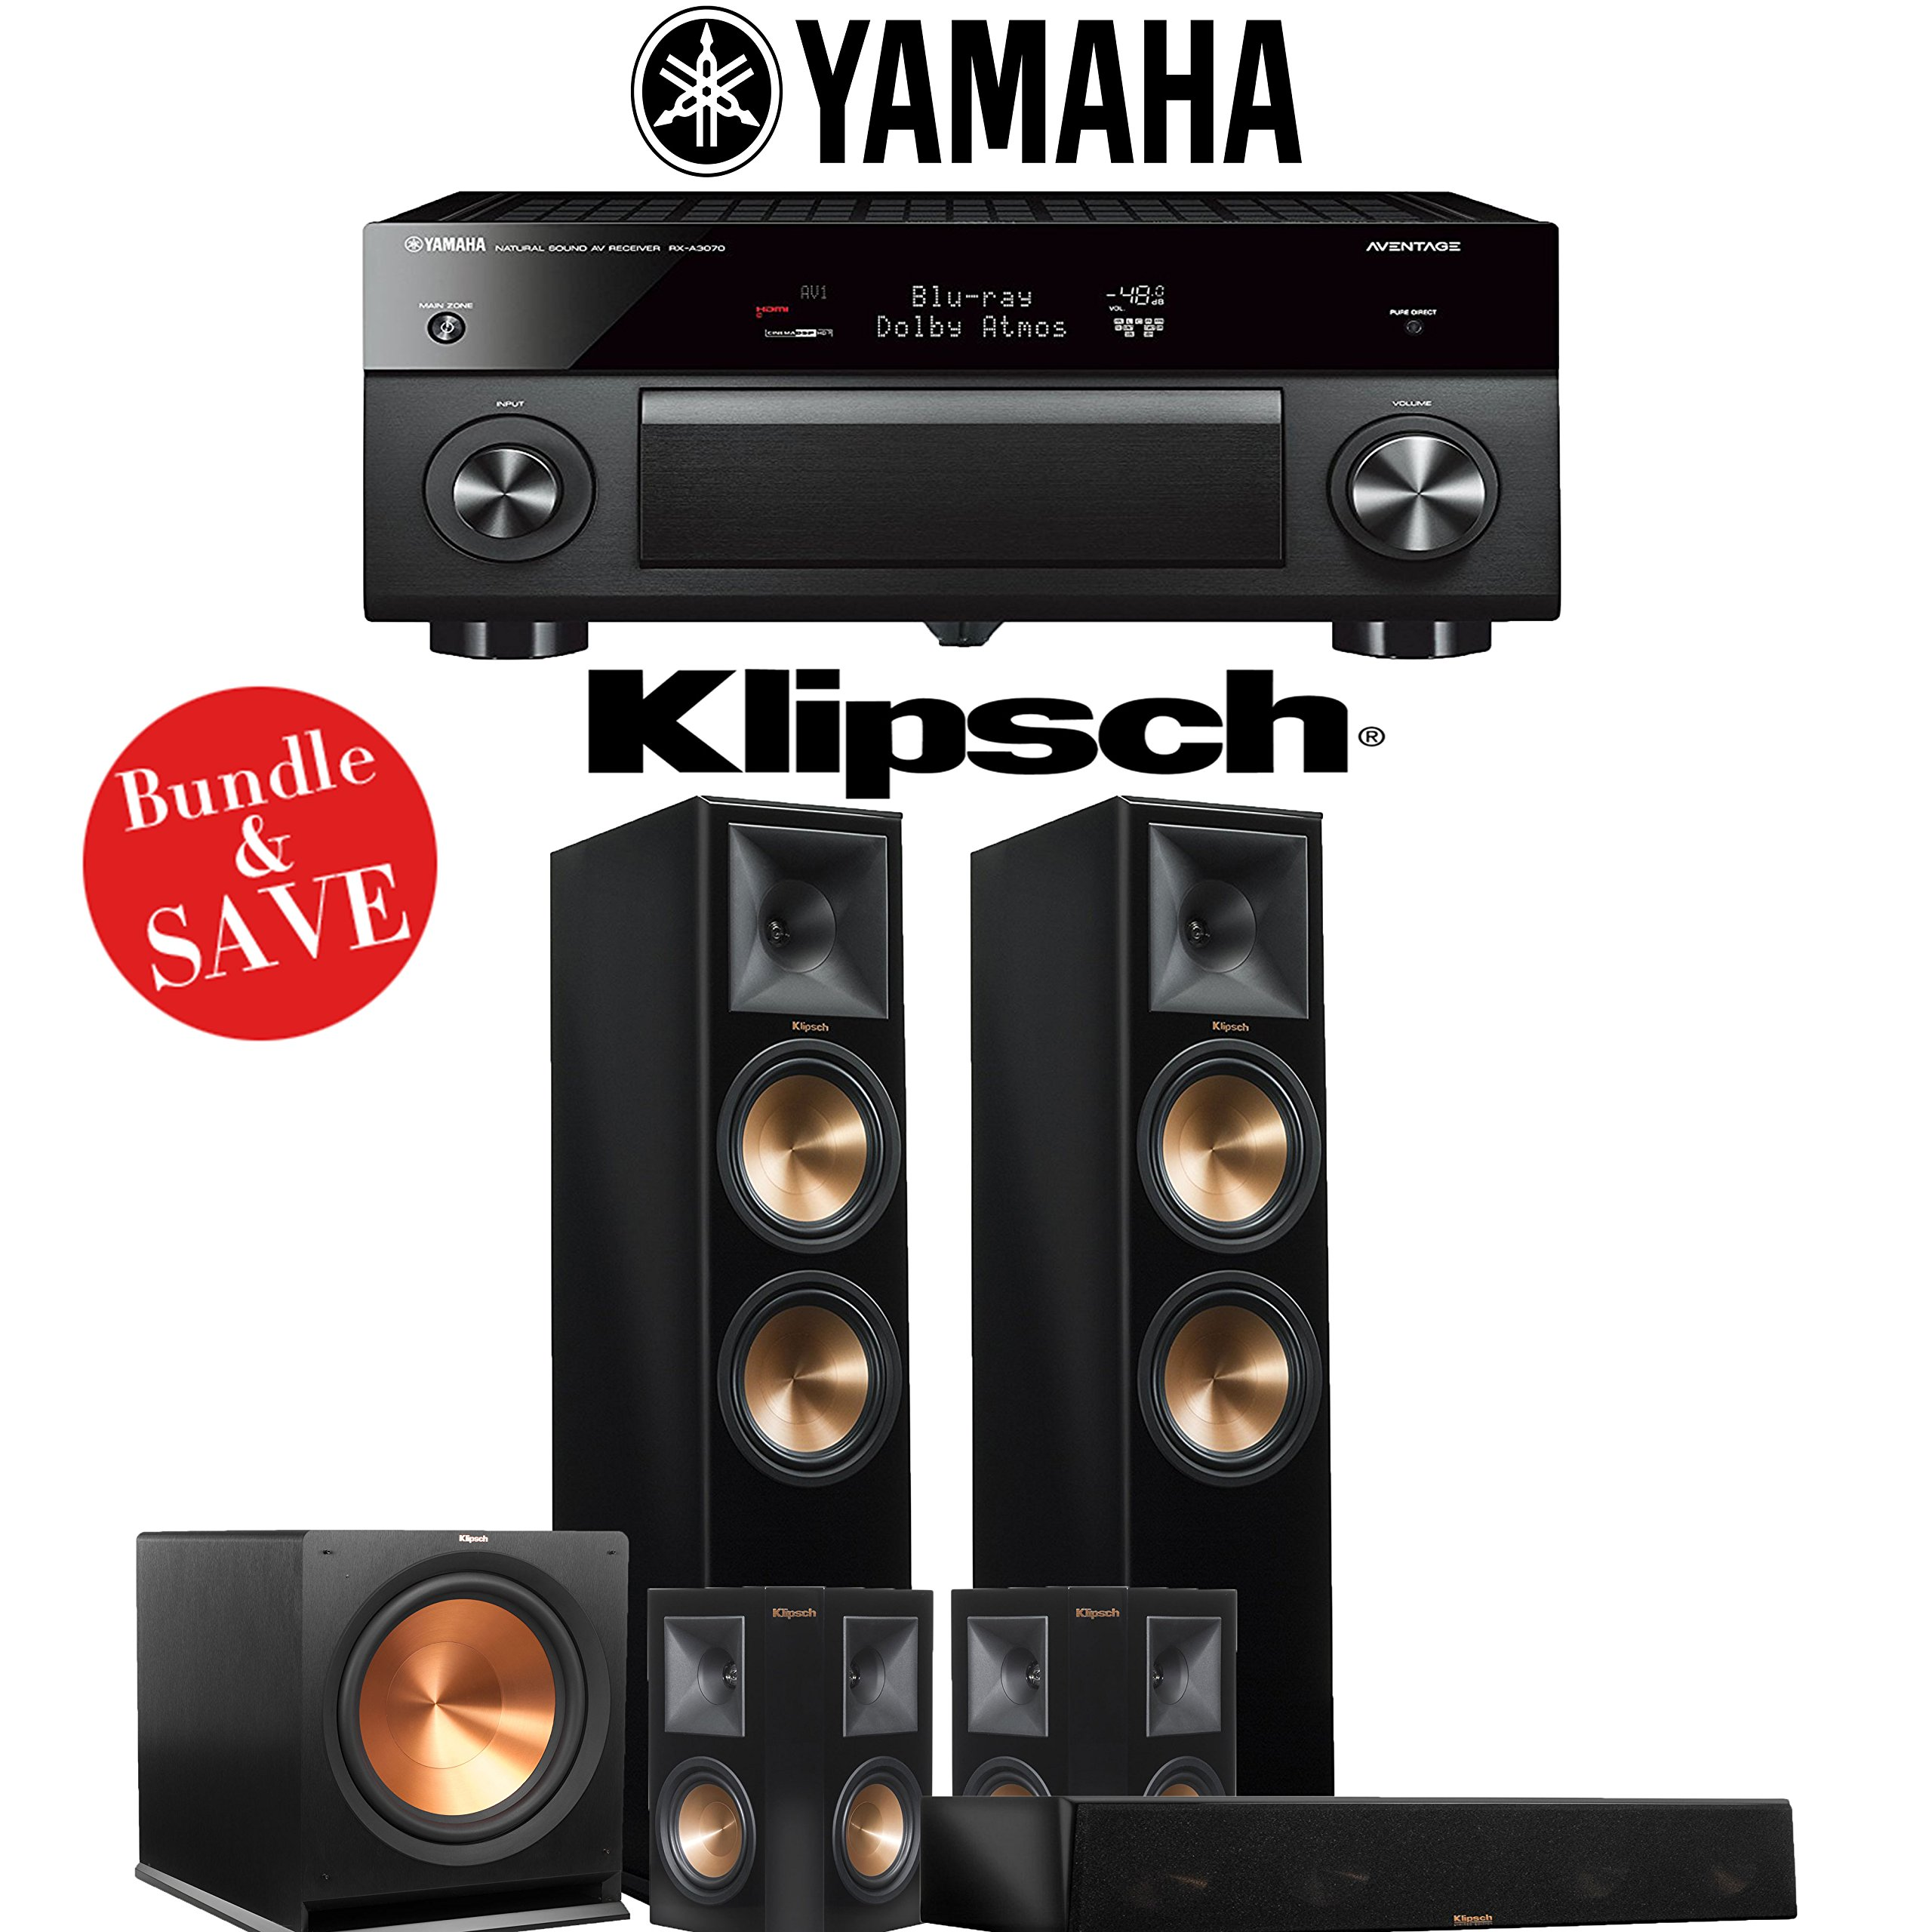 Klipsch RP-280F 5.1-Ch Reference Premiere Home Theater System (Piano Black) with Yamaha AVENTAGE RX-A3070BL 11.2-Channel Network A/V Receiver